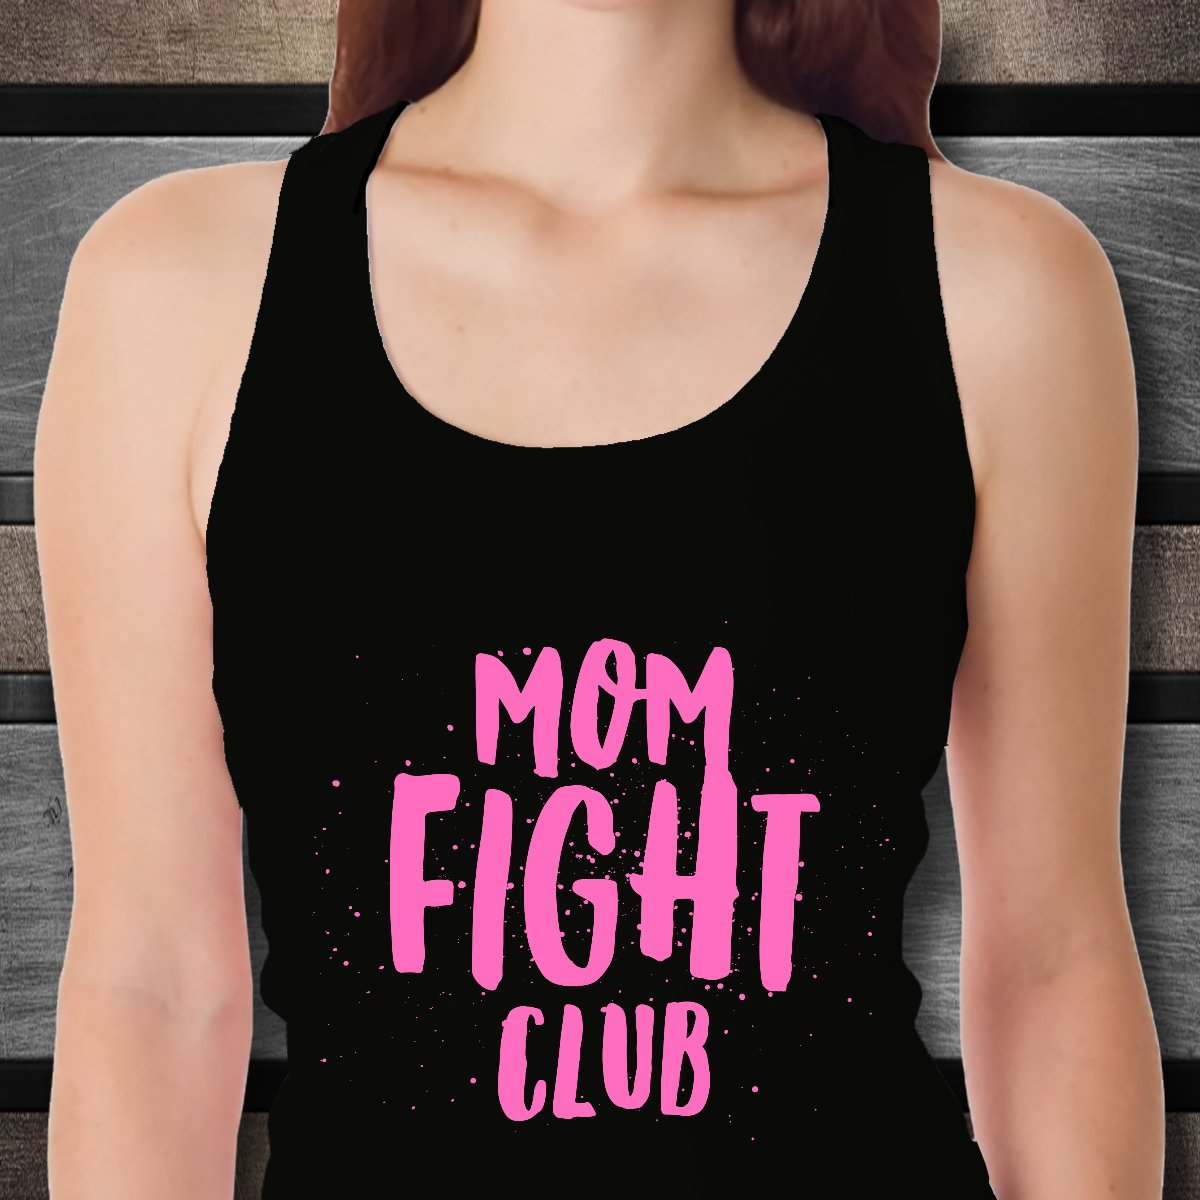 After last night, this is a slow #SundayMorning #DontTalkAbout #MomFightClub https://t.co/R92o8vDCFO https://t.co/Qu9PQEWDS5